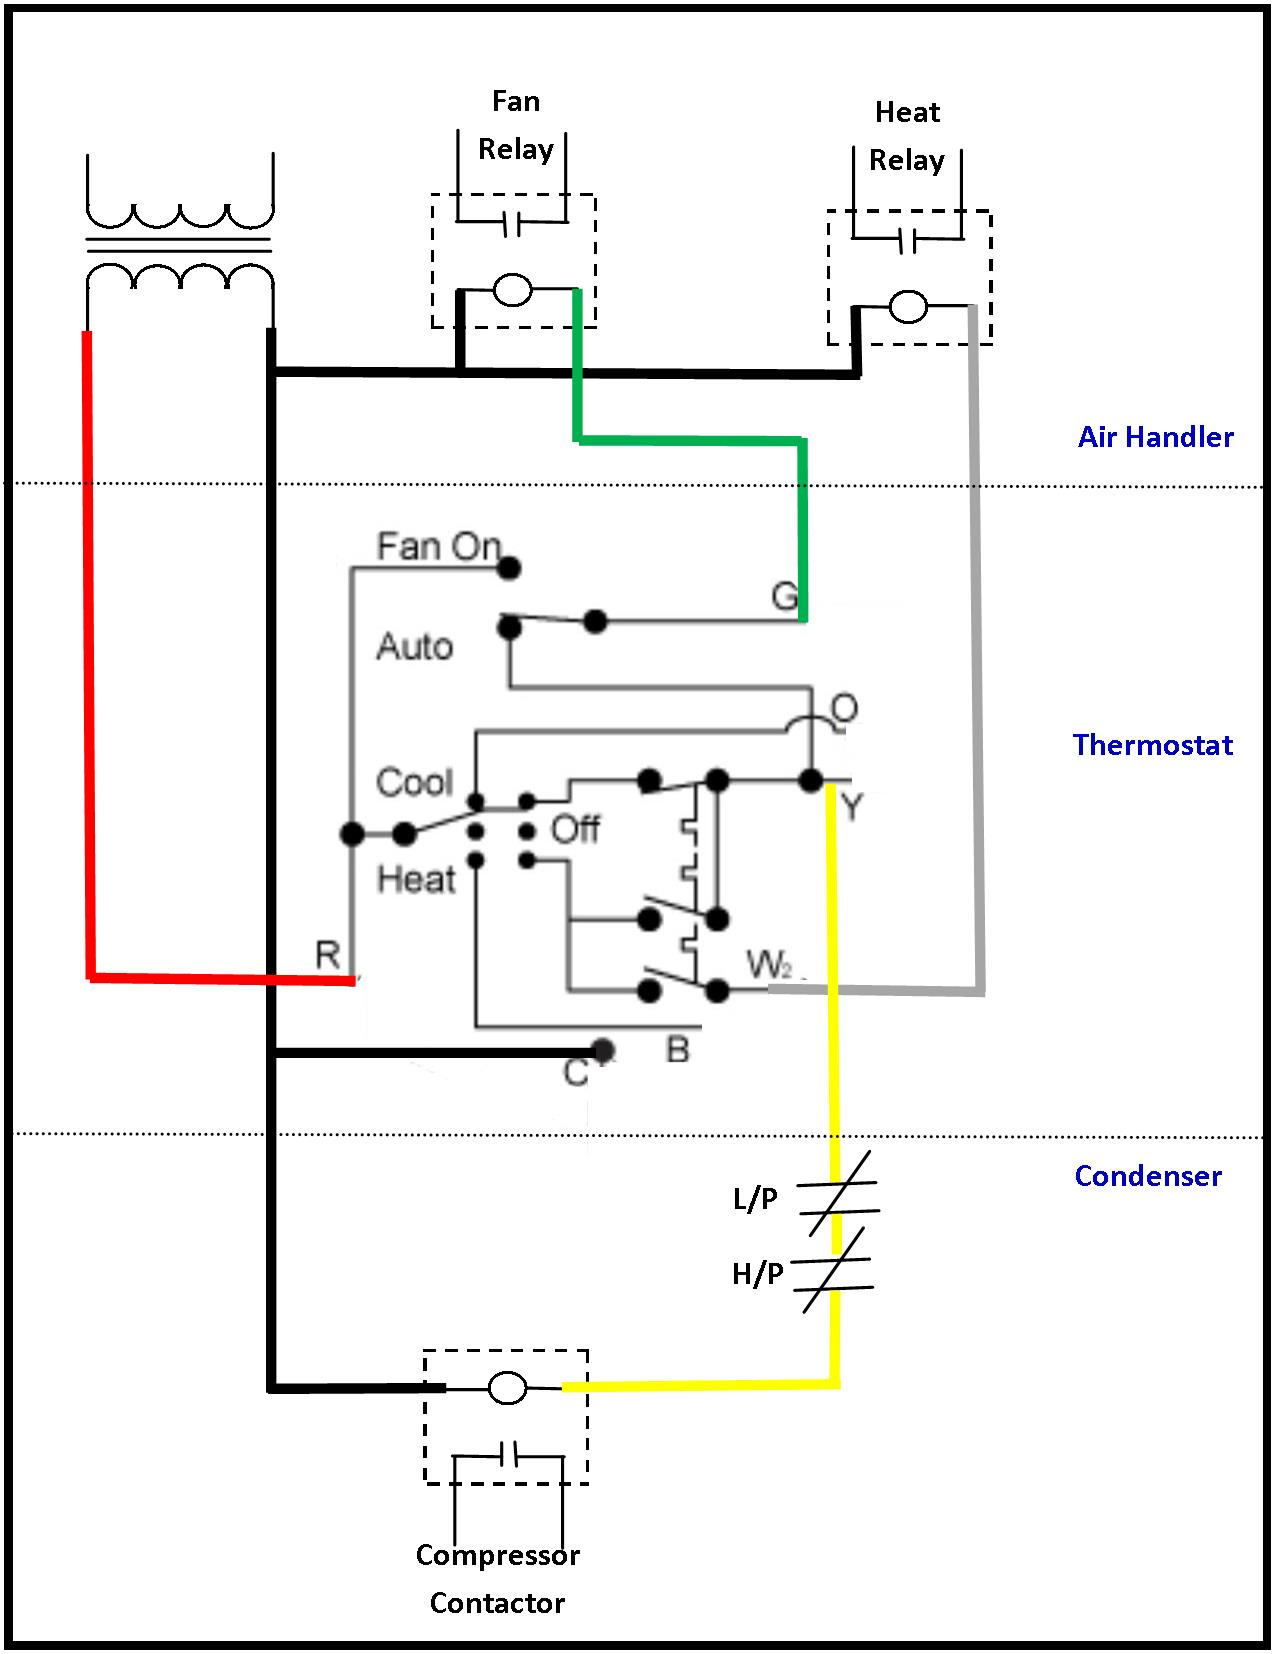 AC low voltage wiring diagram1 hvac wire diagram hvac diagrams schematics \u2022 wiring diagrams j control relay diagram at bakdesigns.co